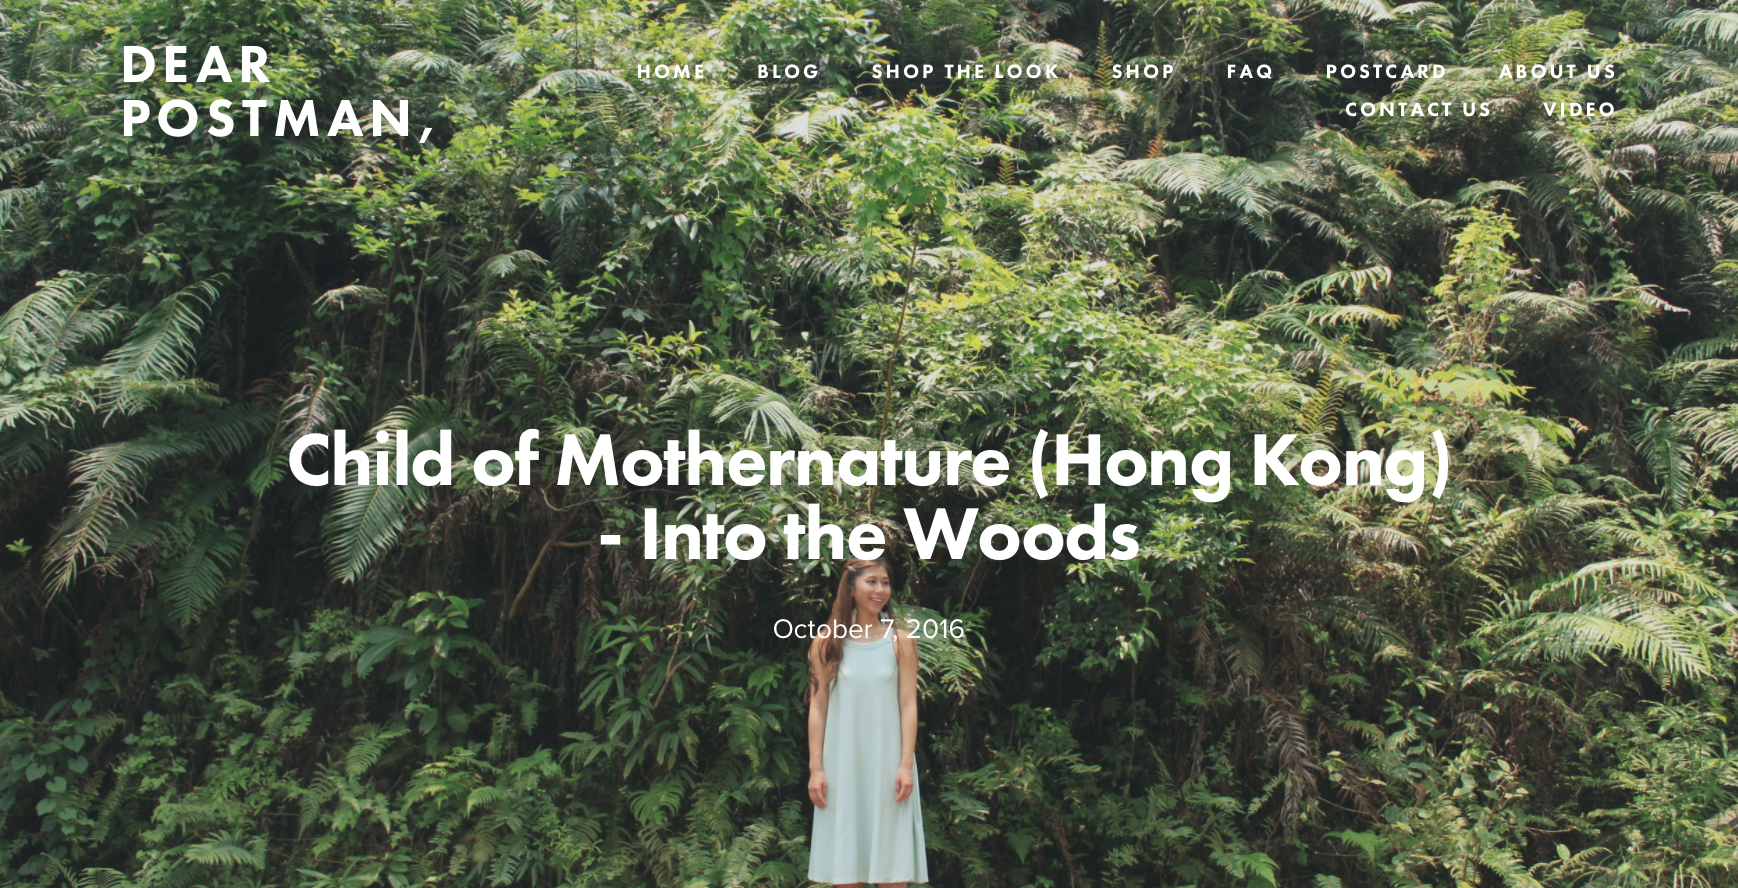 Child of Mothernature (Hong Kong) - Into the Woods